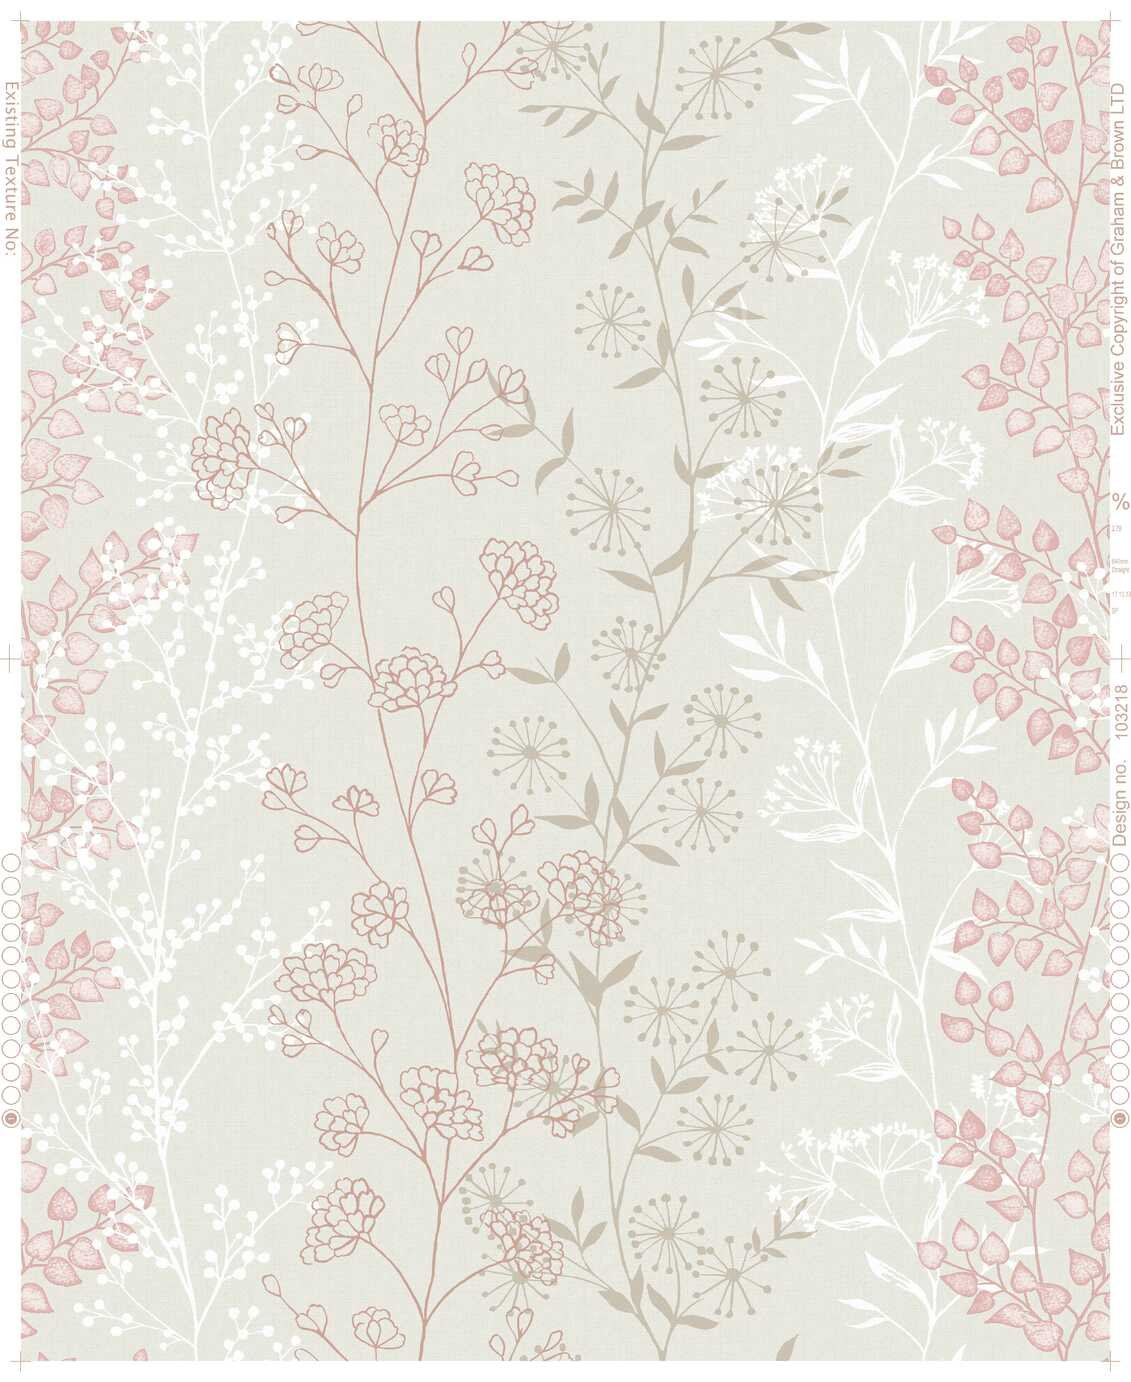 Fresco Jemima Sprigs Blush Pink Wallpaper